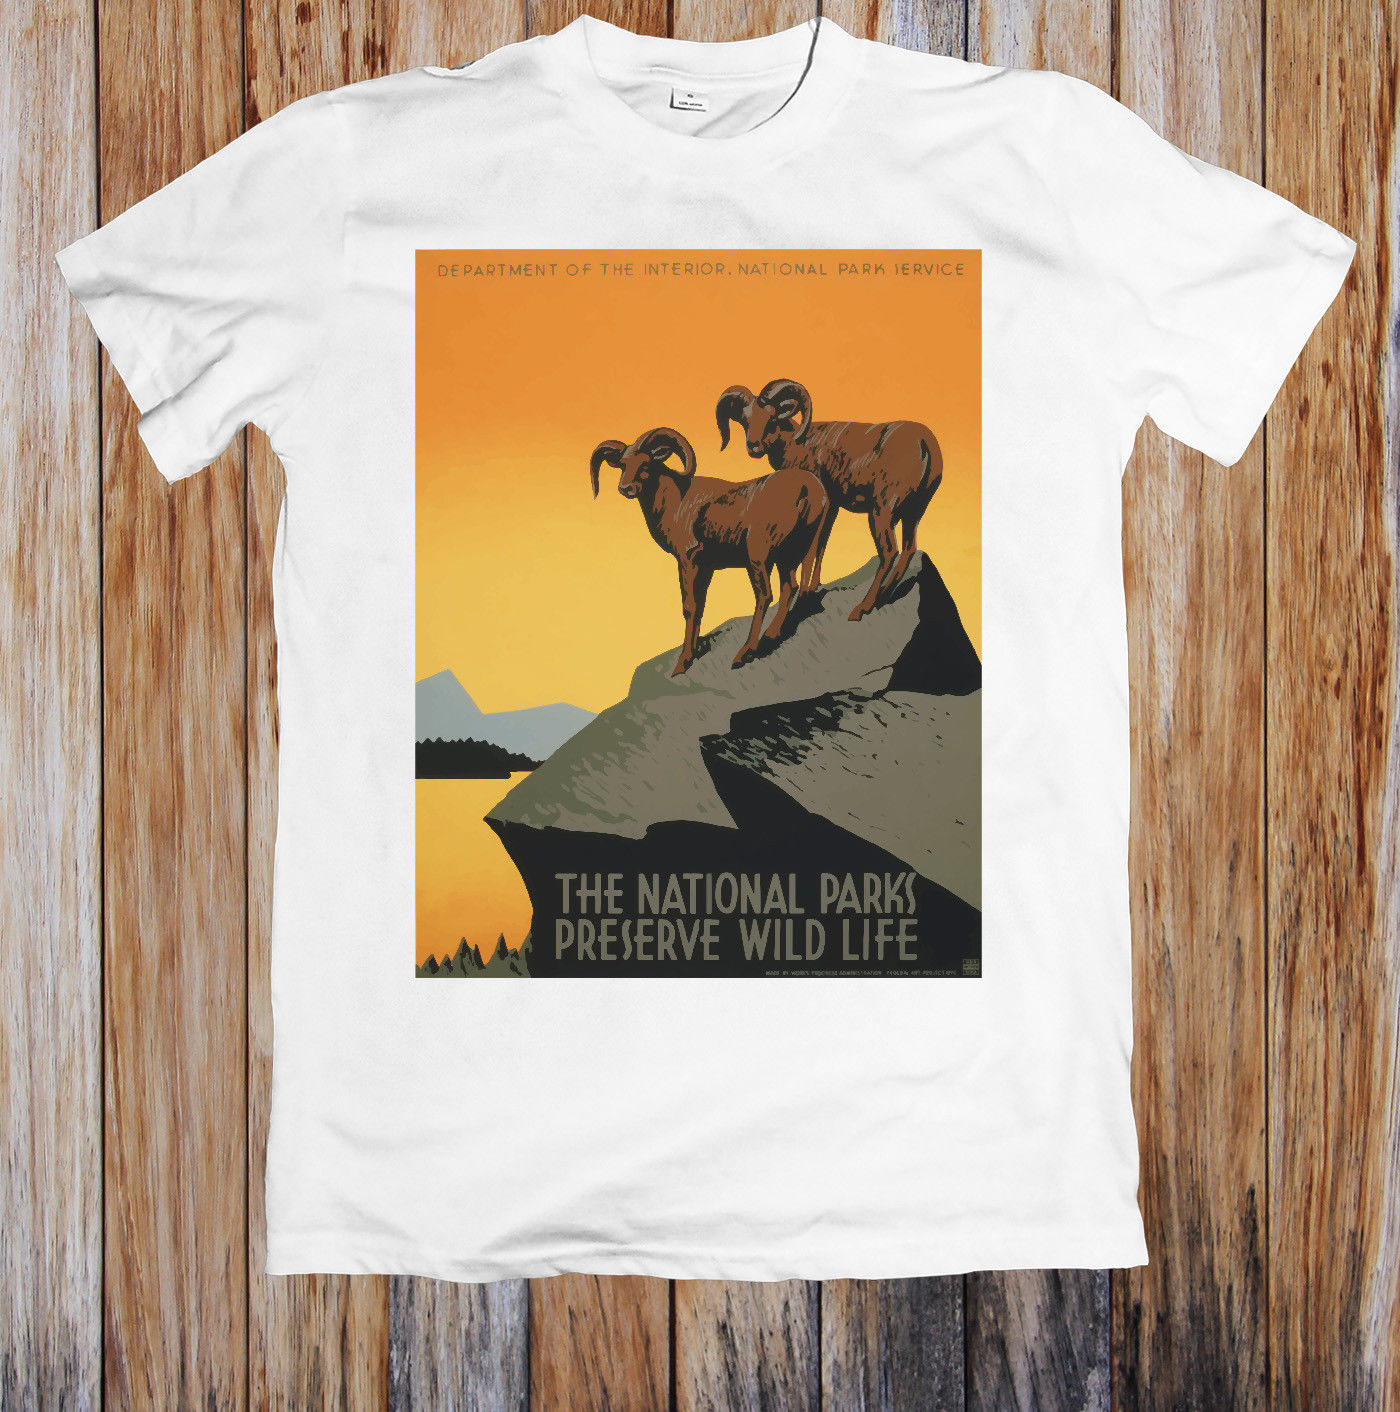 VINTAGE TRAVEL POSTER NATIONAL PARKS AMERICA UNISEX T-SHIRT Tshirt Men Black Short Sleeve Cotton Hip Hop T-Shirt Print Tee Shirt image